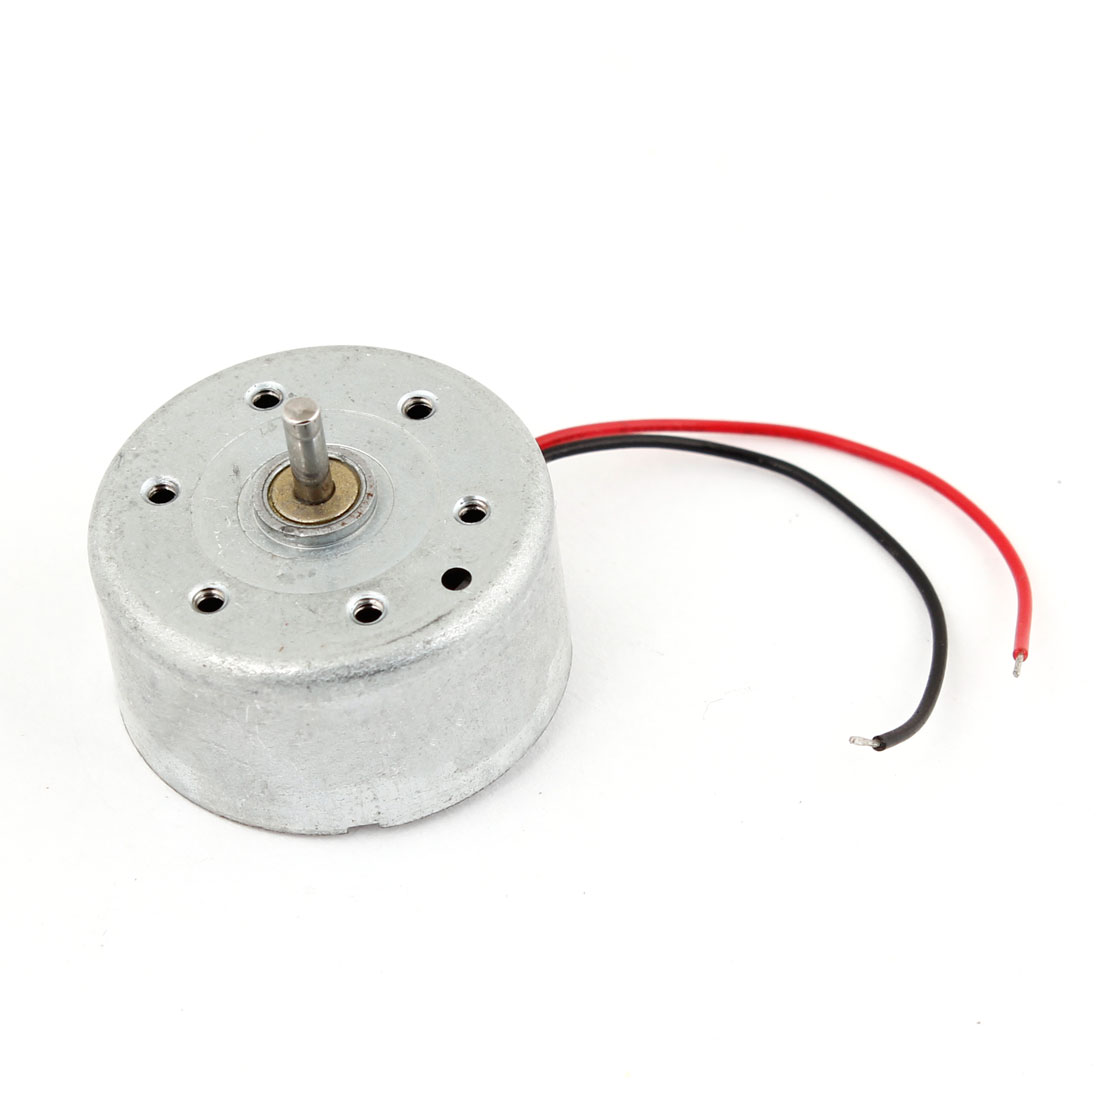 1800r-min-2mm-Dia-Drive-Shaft-CD-Player-Electric-Motor-DC1-5-4-5V